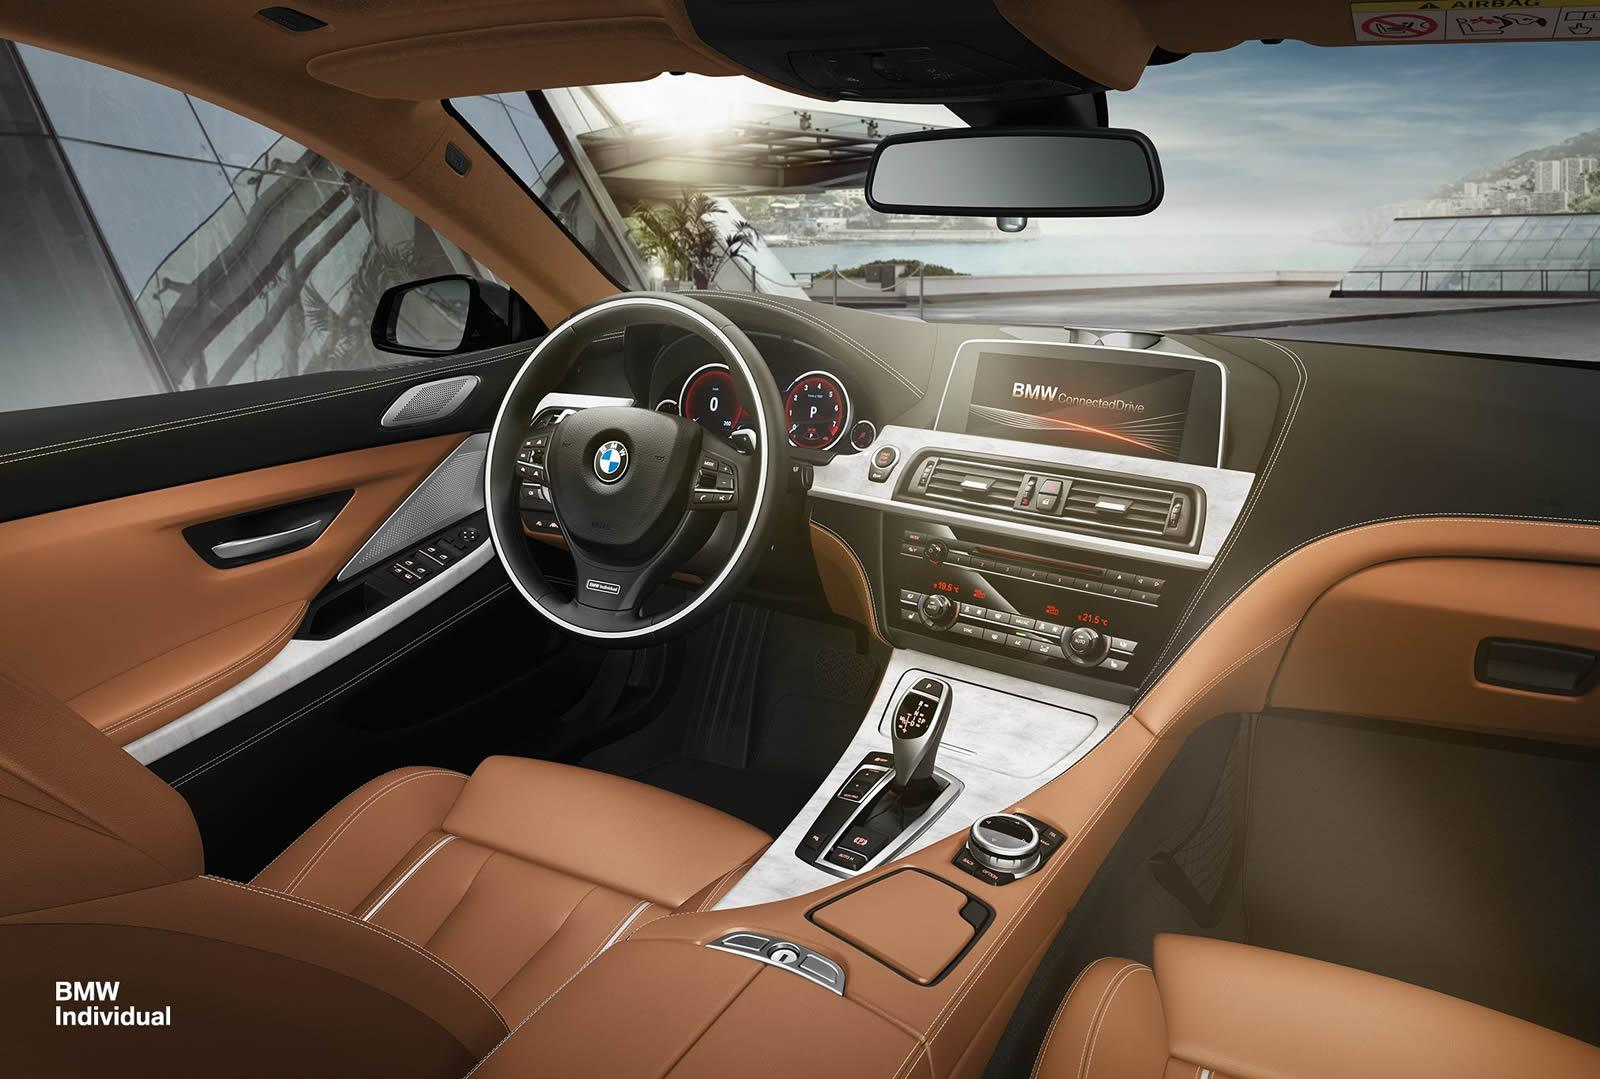 Facelifted BMW I Gran Coupe From BMW Individual GTspirit - 2015 bmw 650i coupe